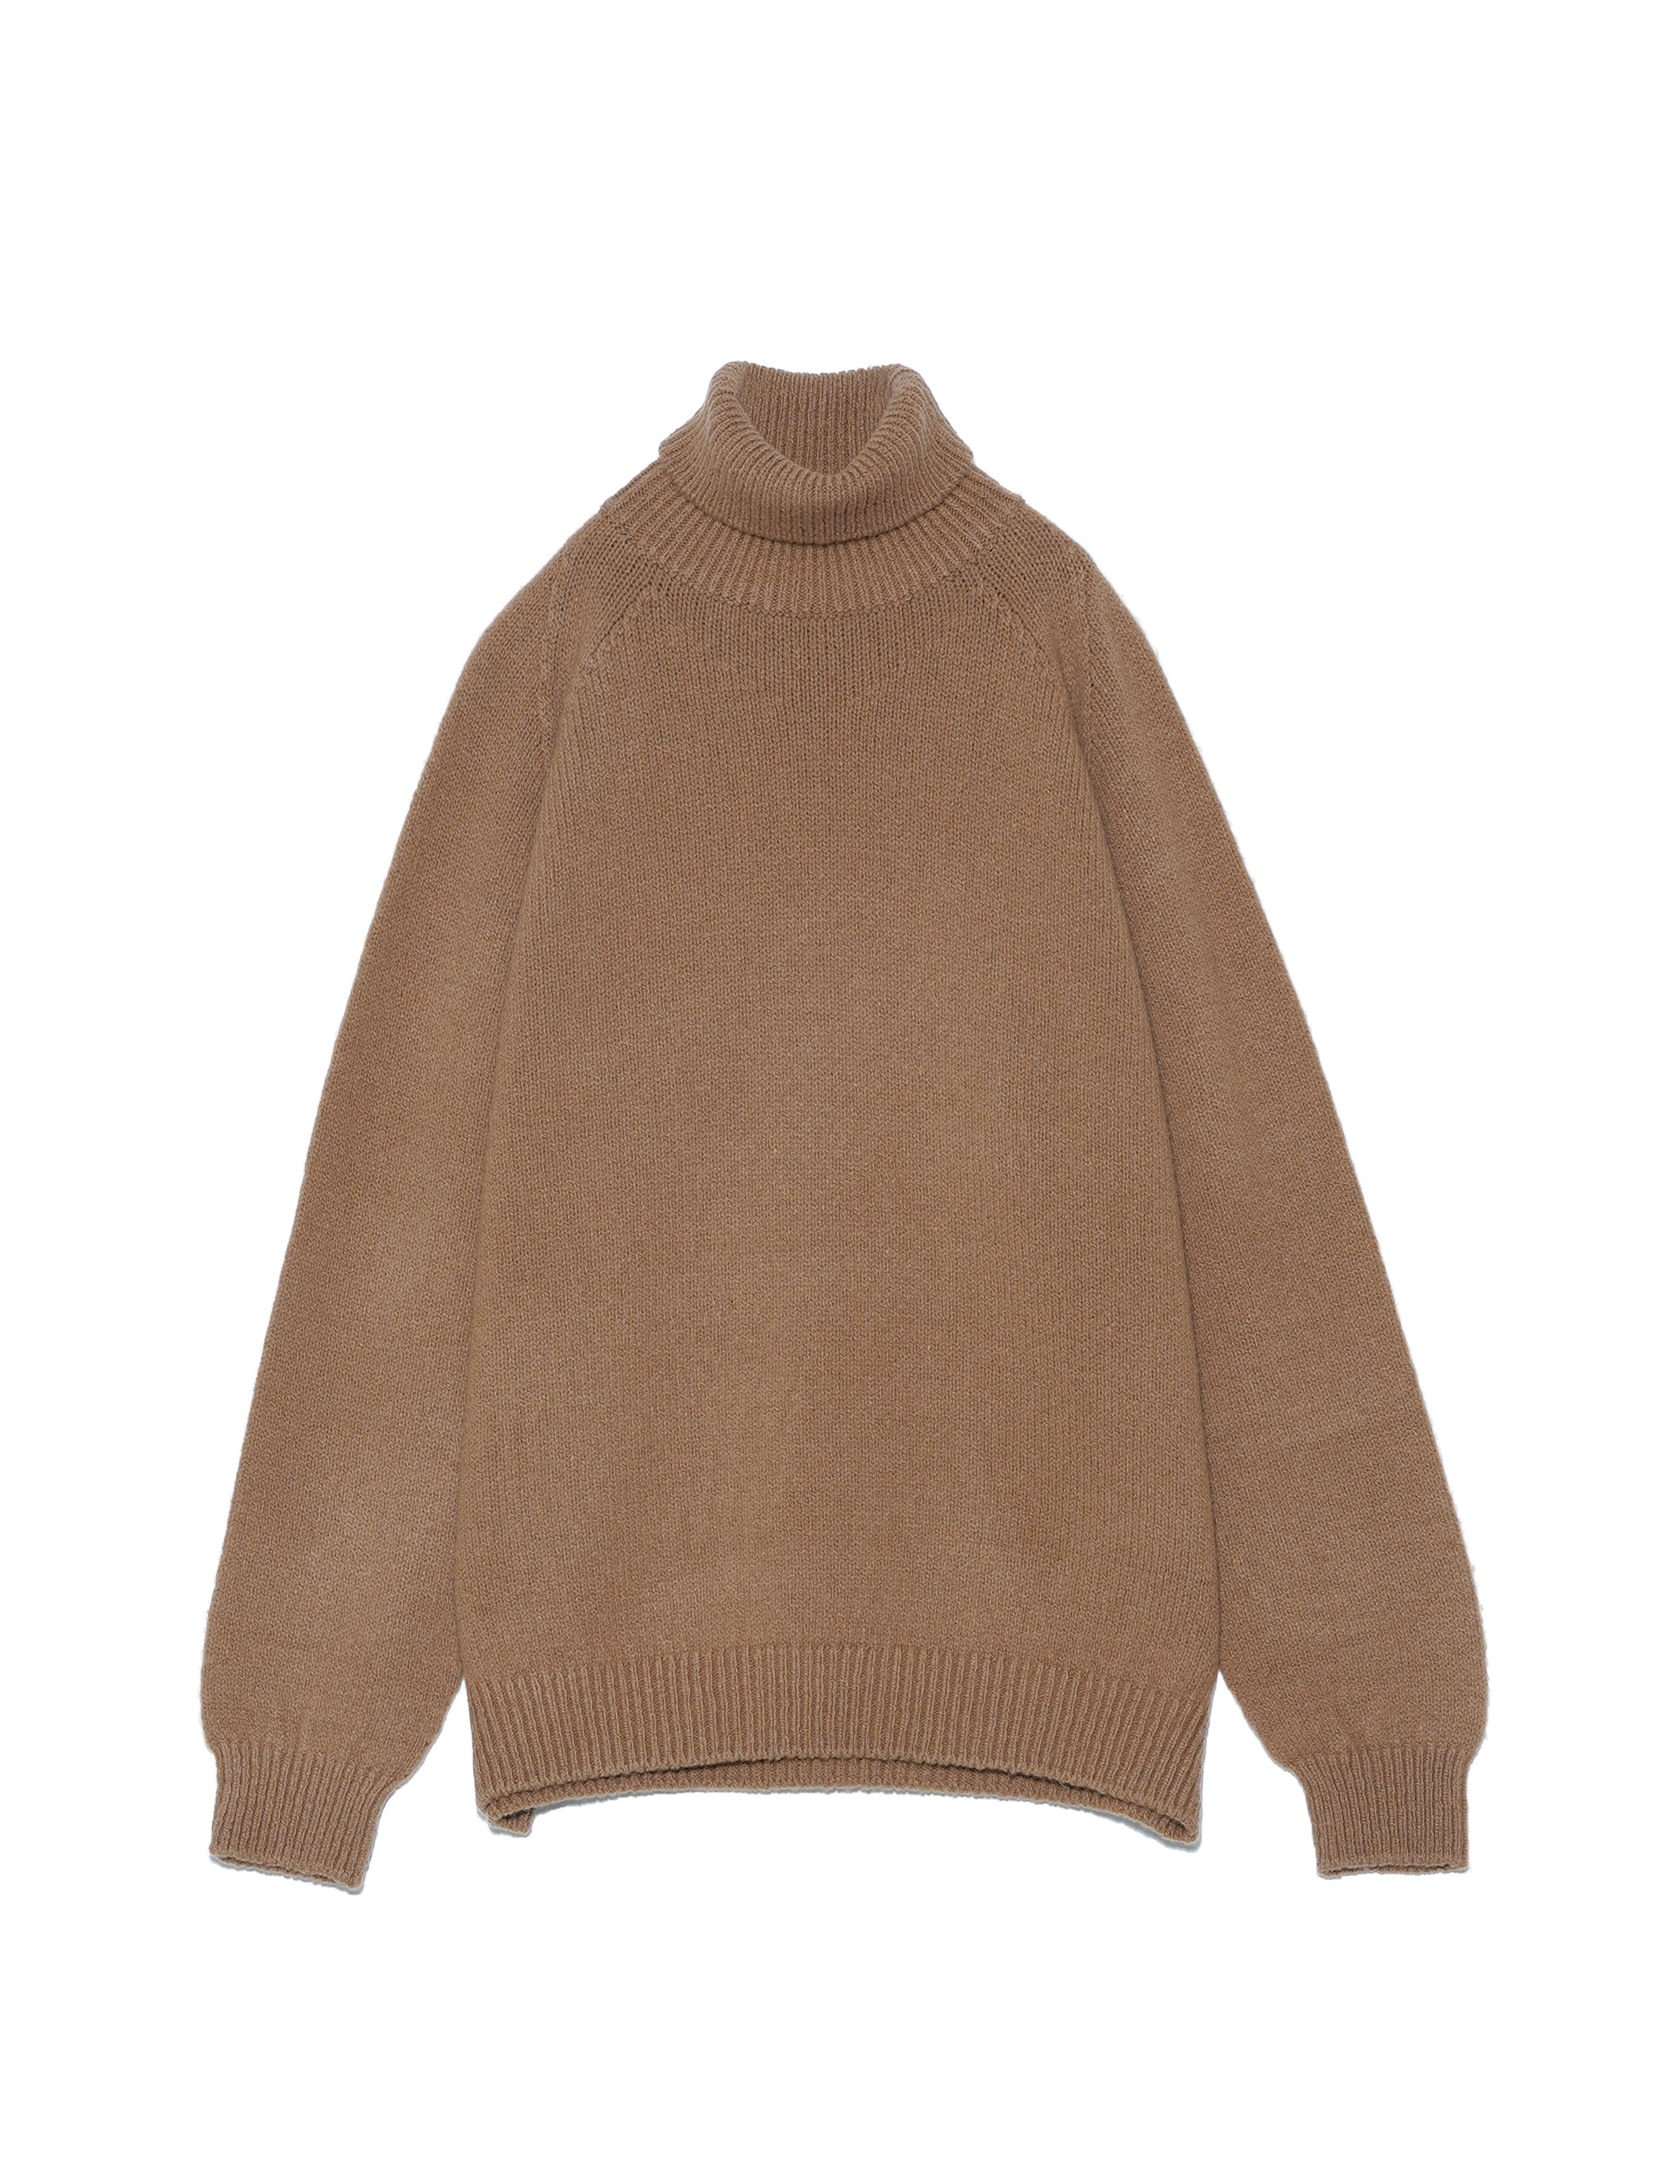 WHOLEGARMENT TURTLE-NECK (CAMEL)